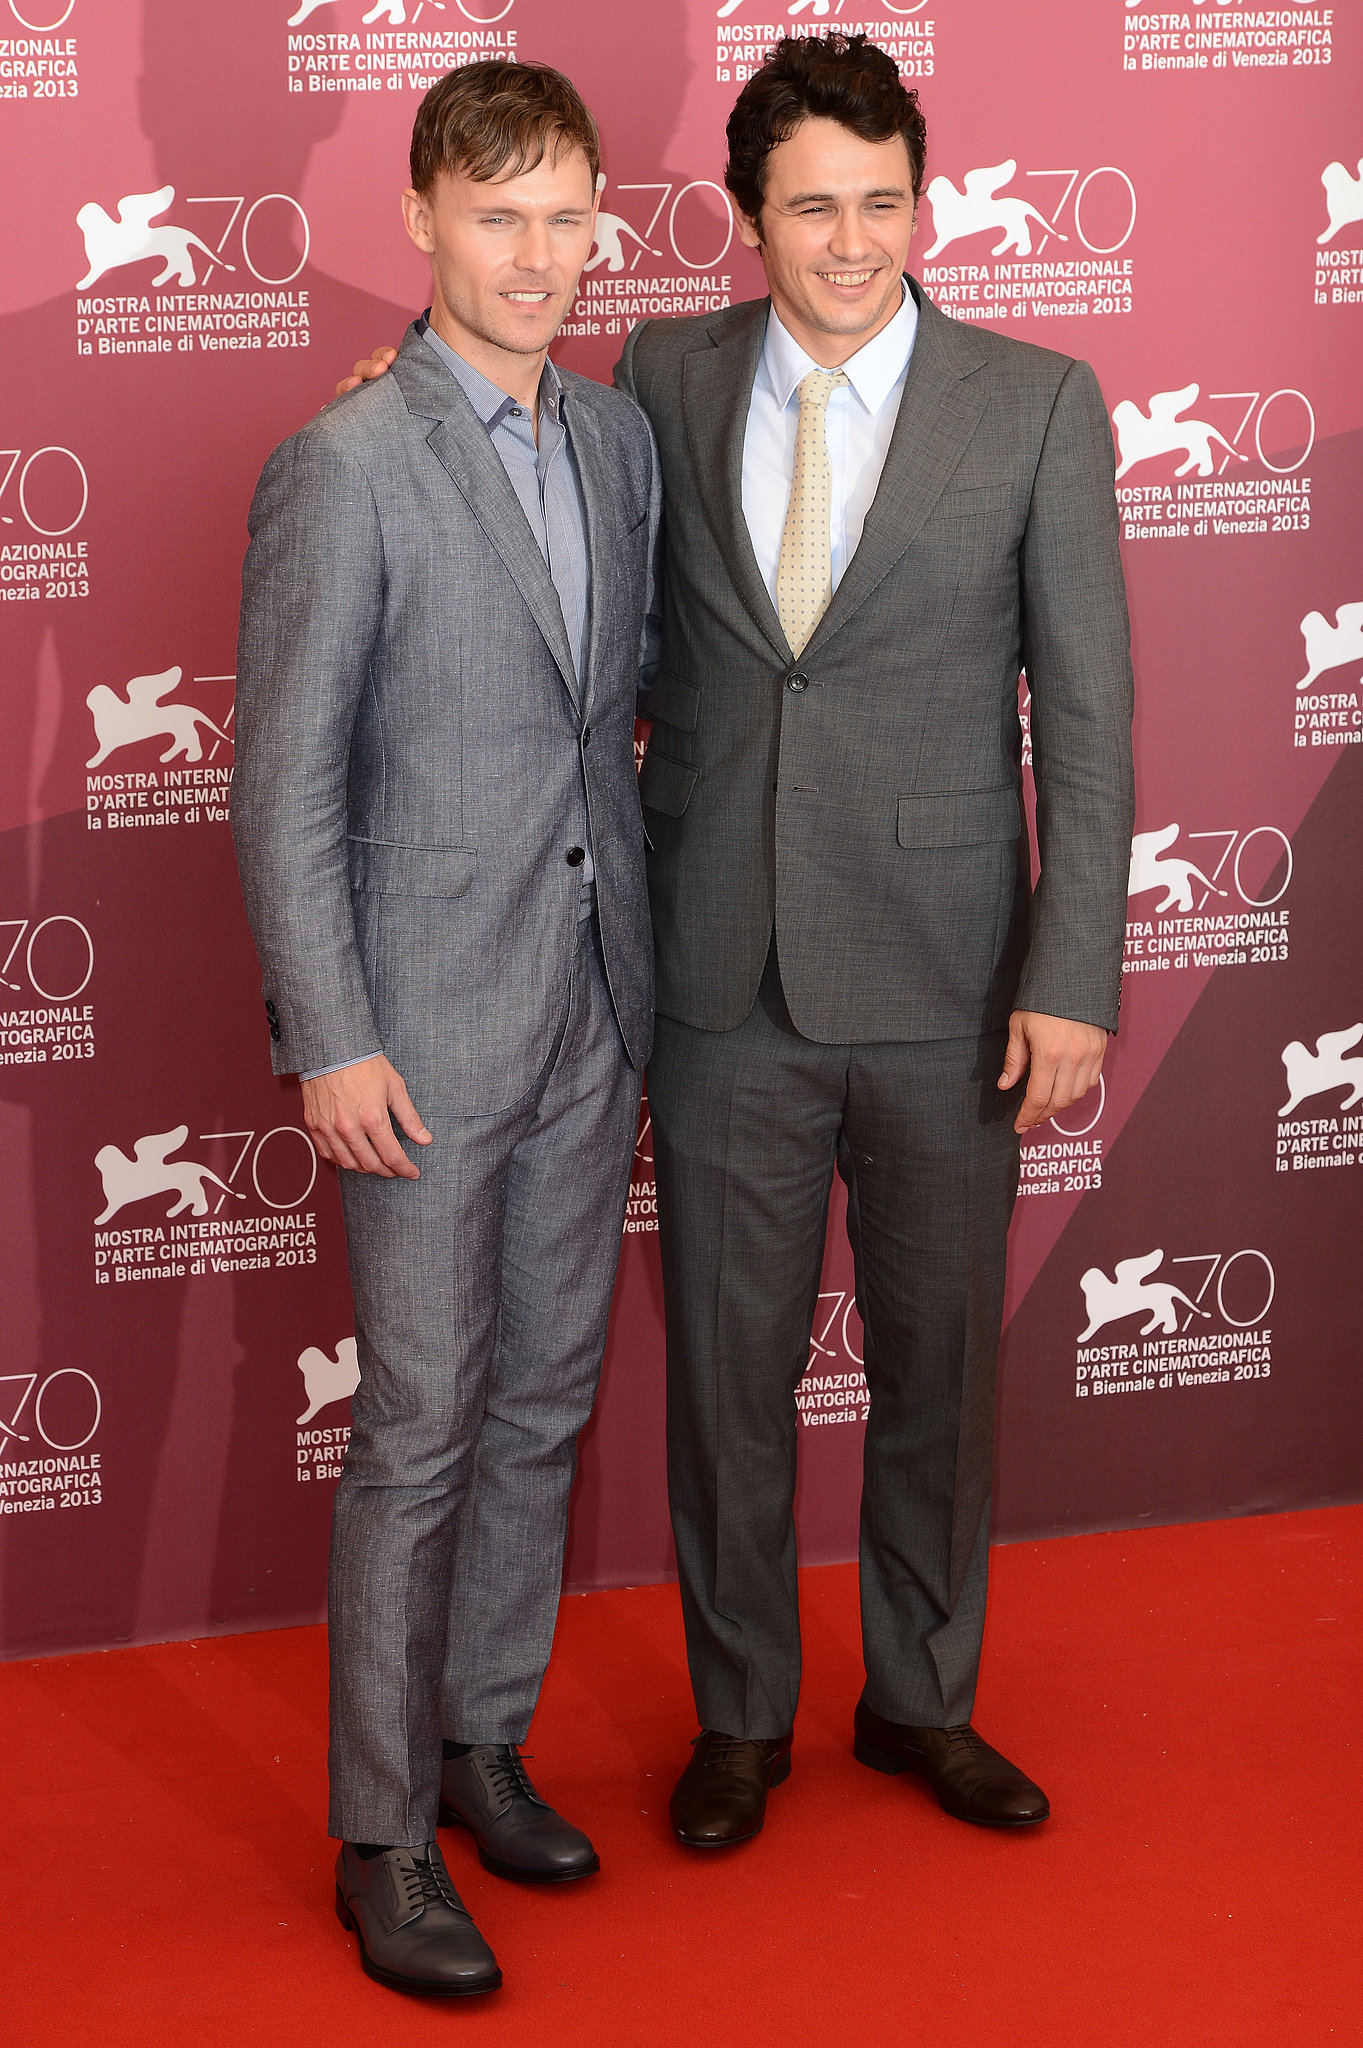 James Franco and actor Scott Haze posed together for the Child of God photocall at the Venice Film Festival.